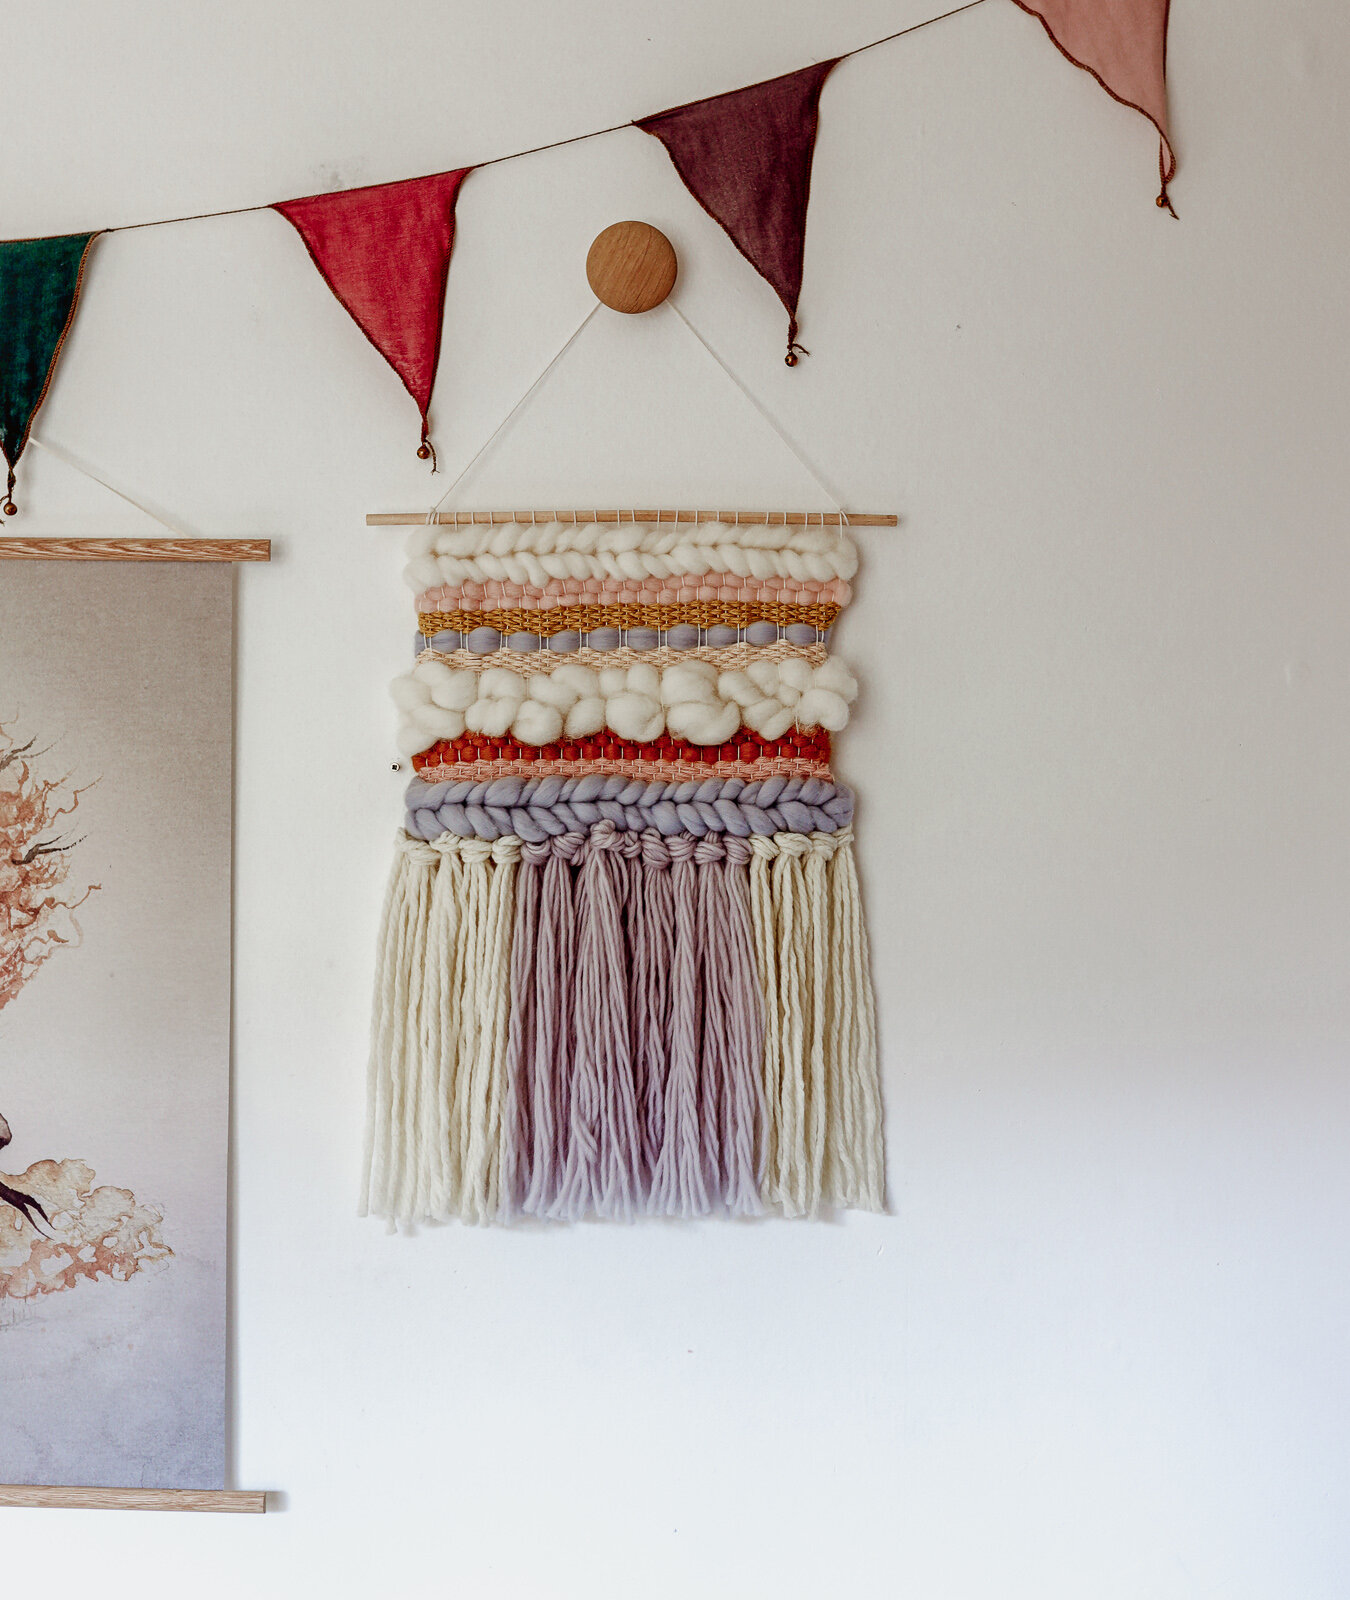 DIY_woven_wall_hanging_by_clever_poppy_finishedwall2.jpg